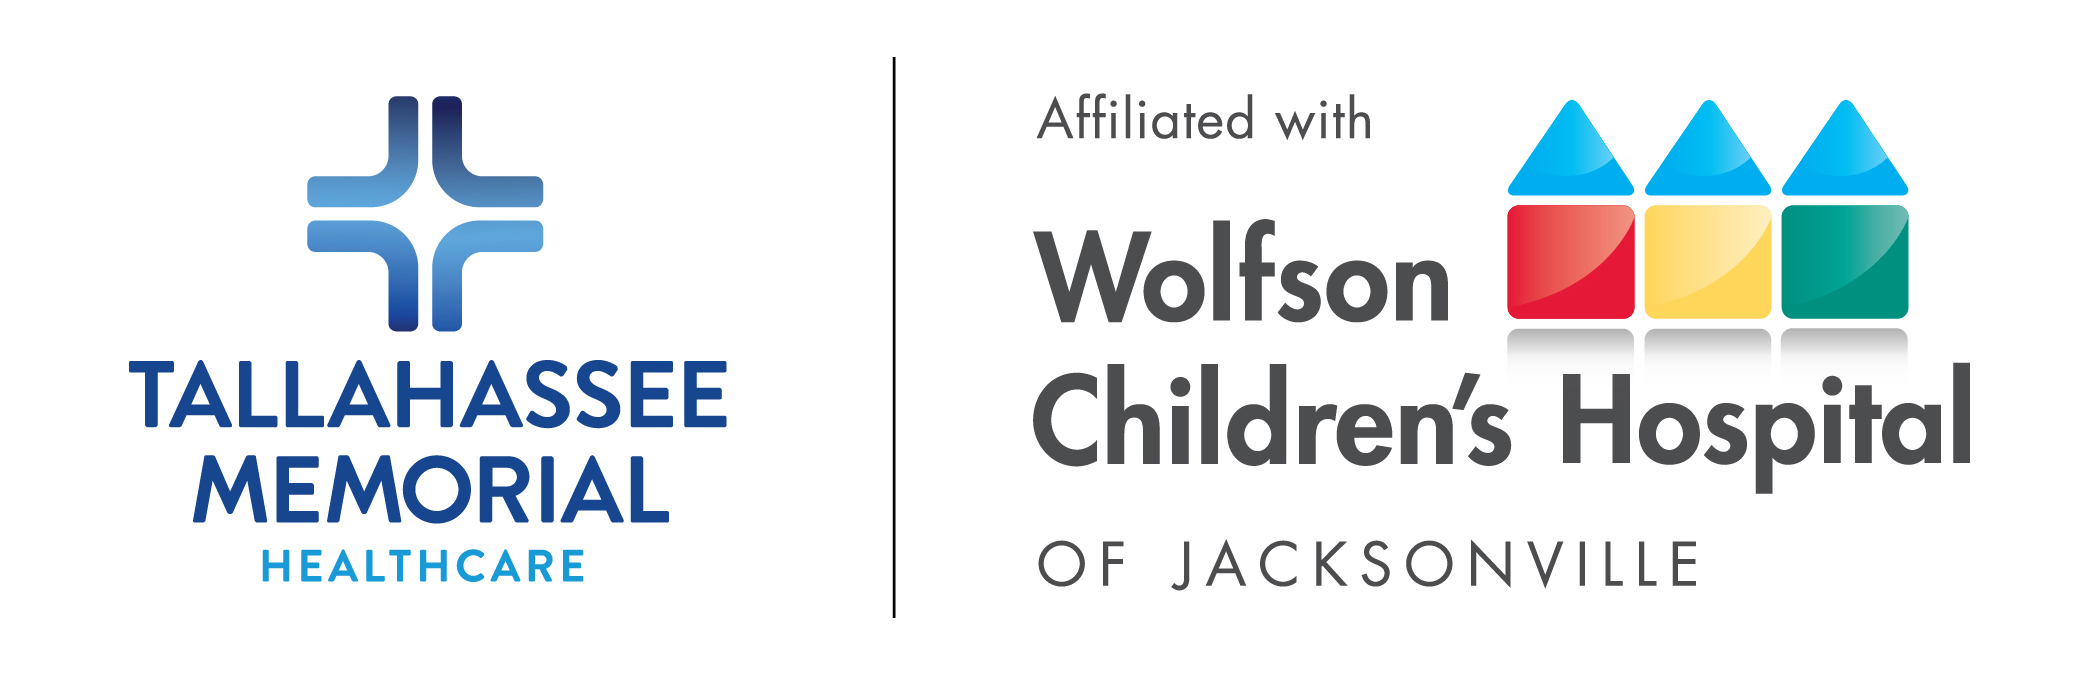 Tallahassee Memorial and Wolfson Children's Logos